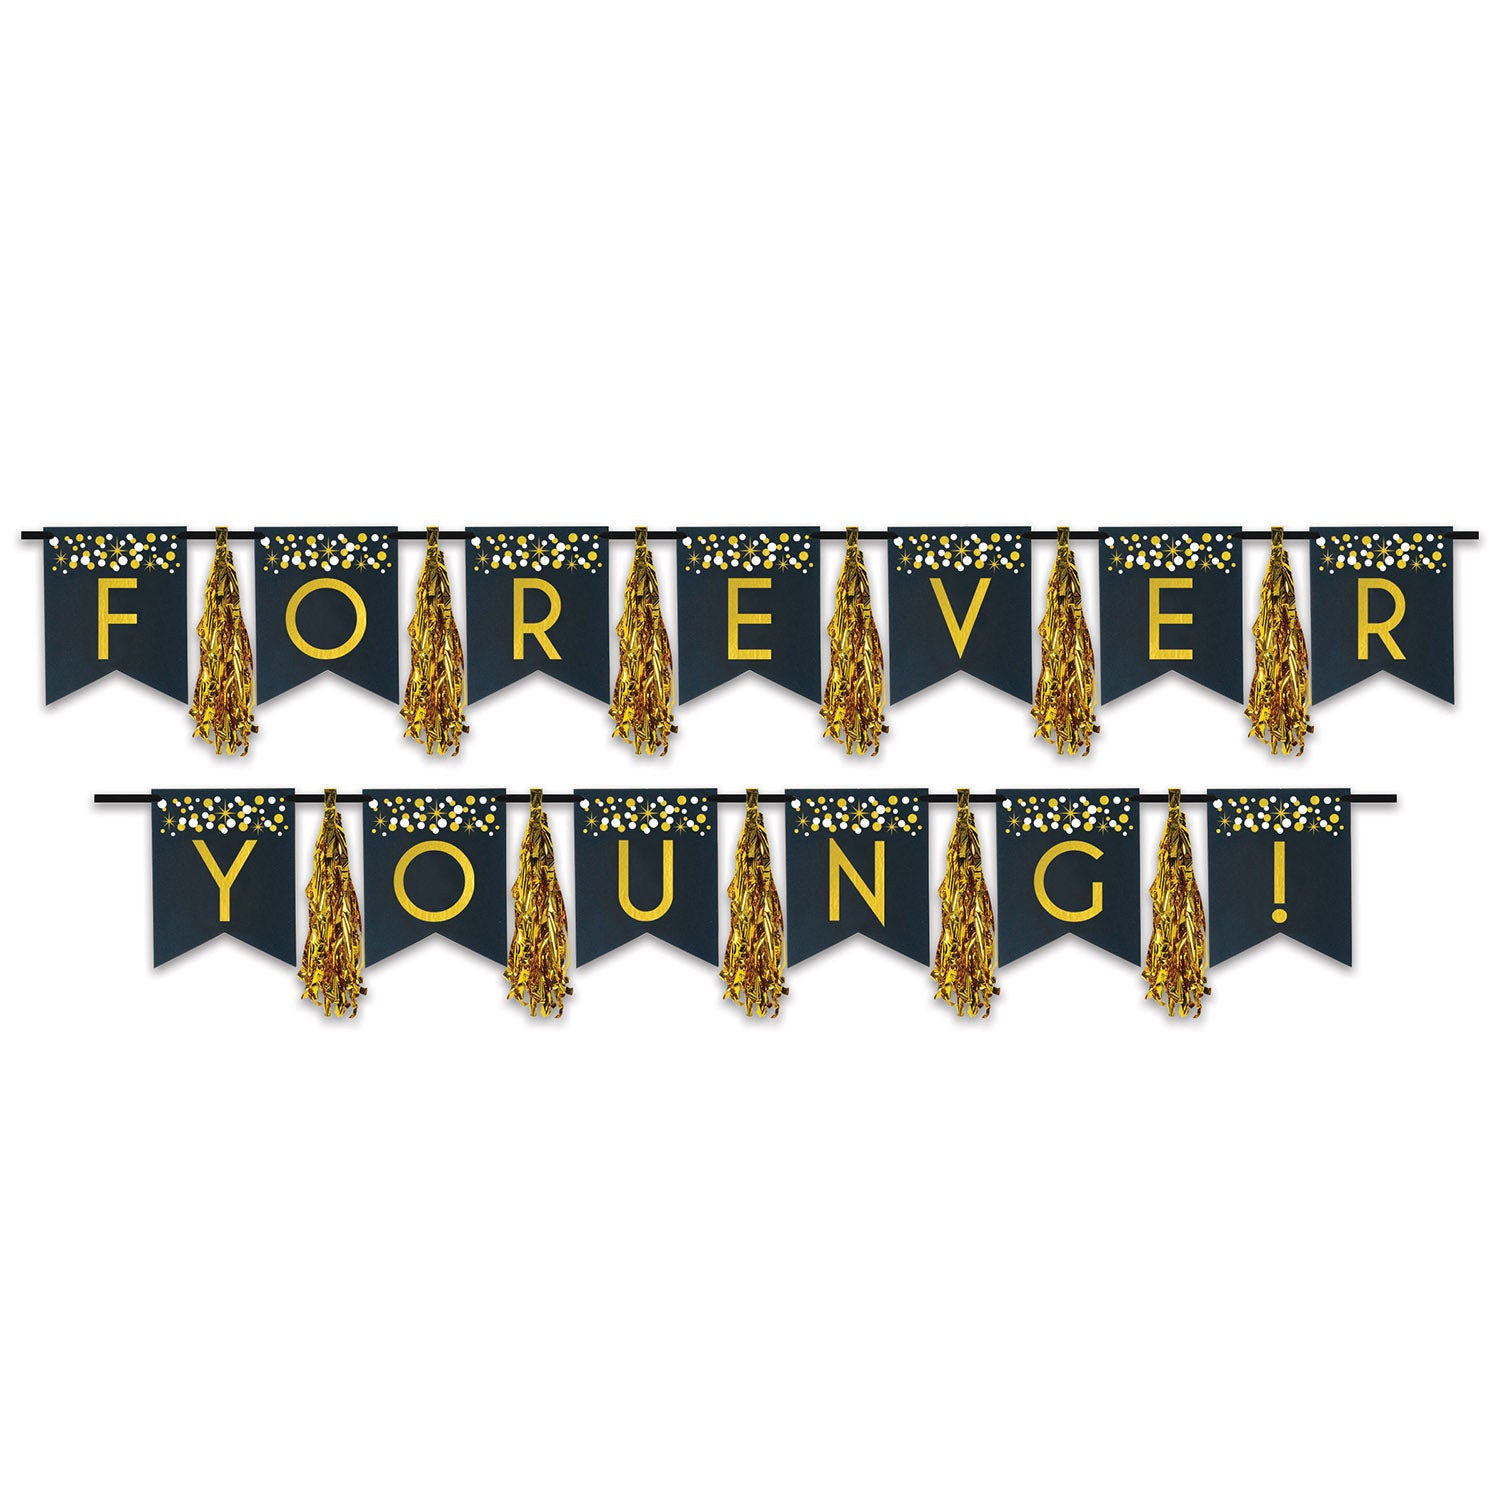 Forever Young! Tassel Streamer (2/Pkg) by Beistle - Over-The-Hill Theme Decorations